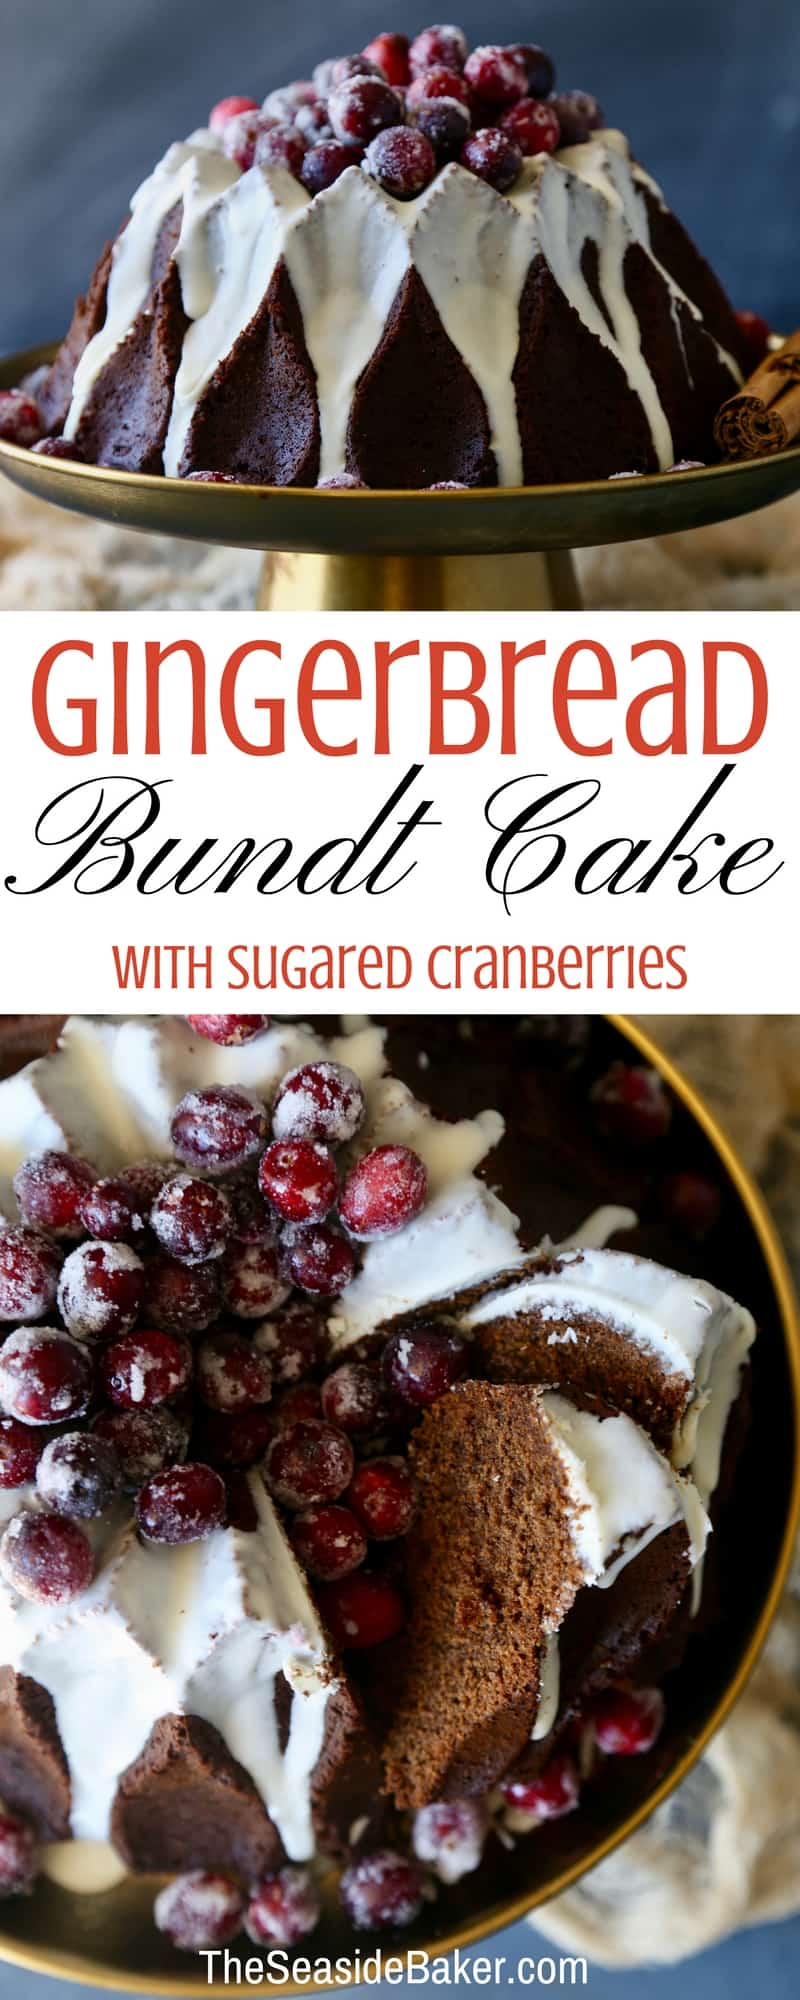 Gingerbread Bundt Cake with Sugared Cranberries